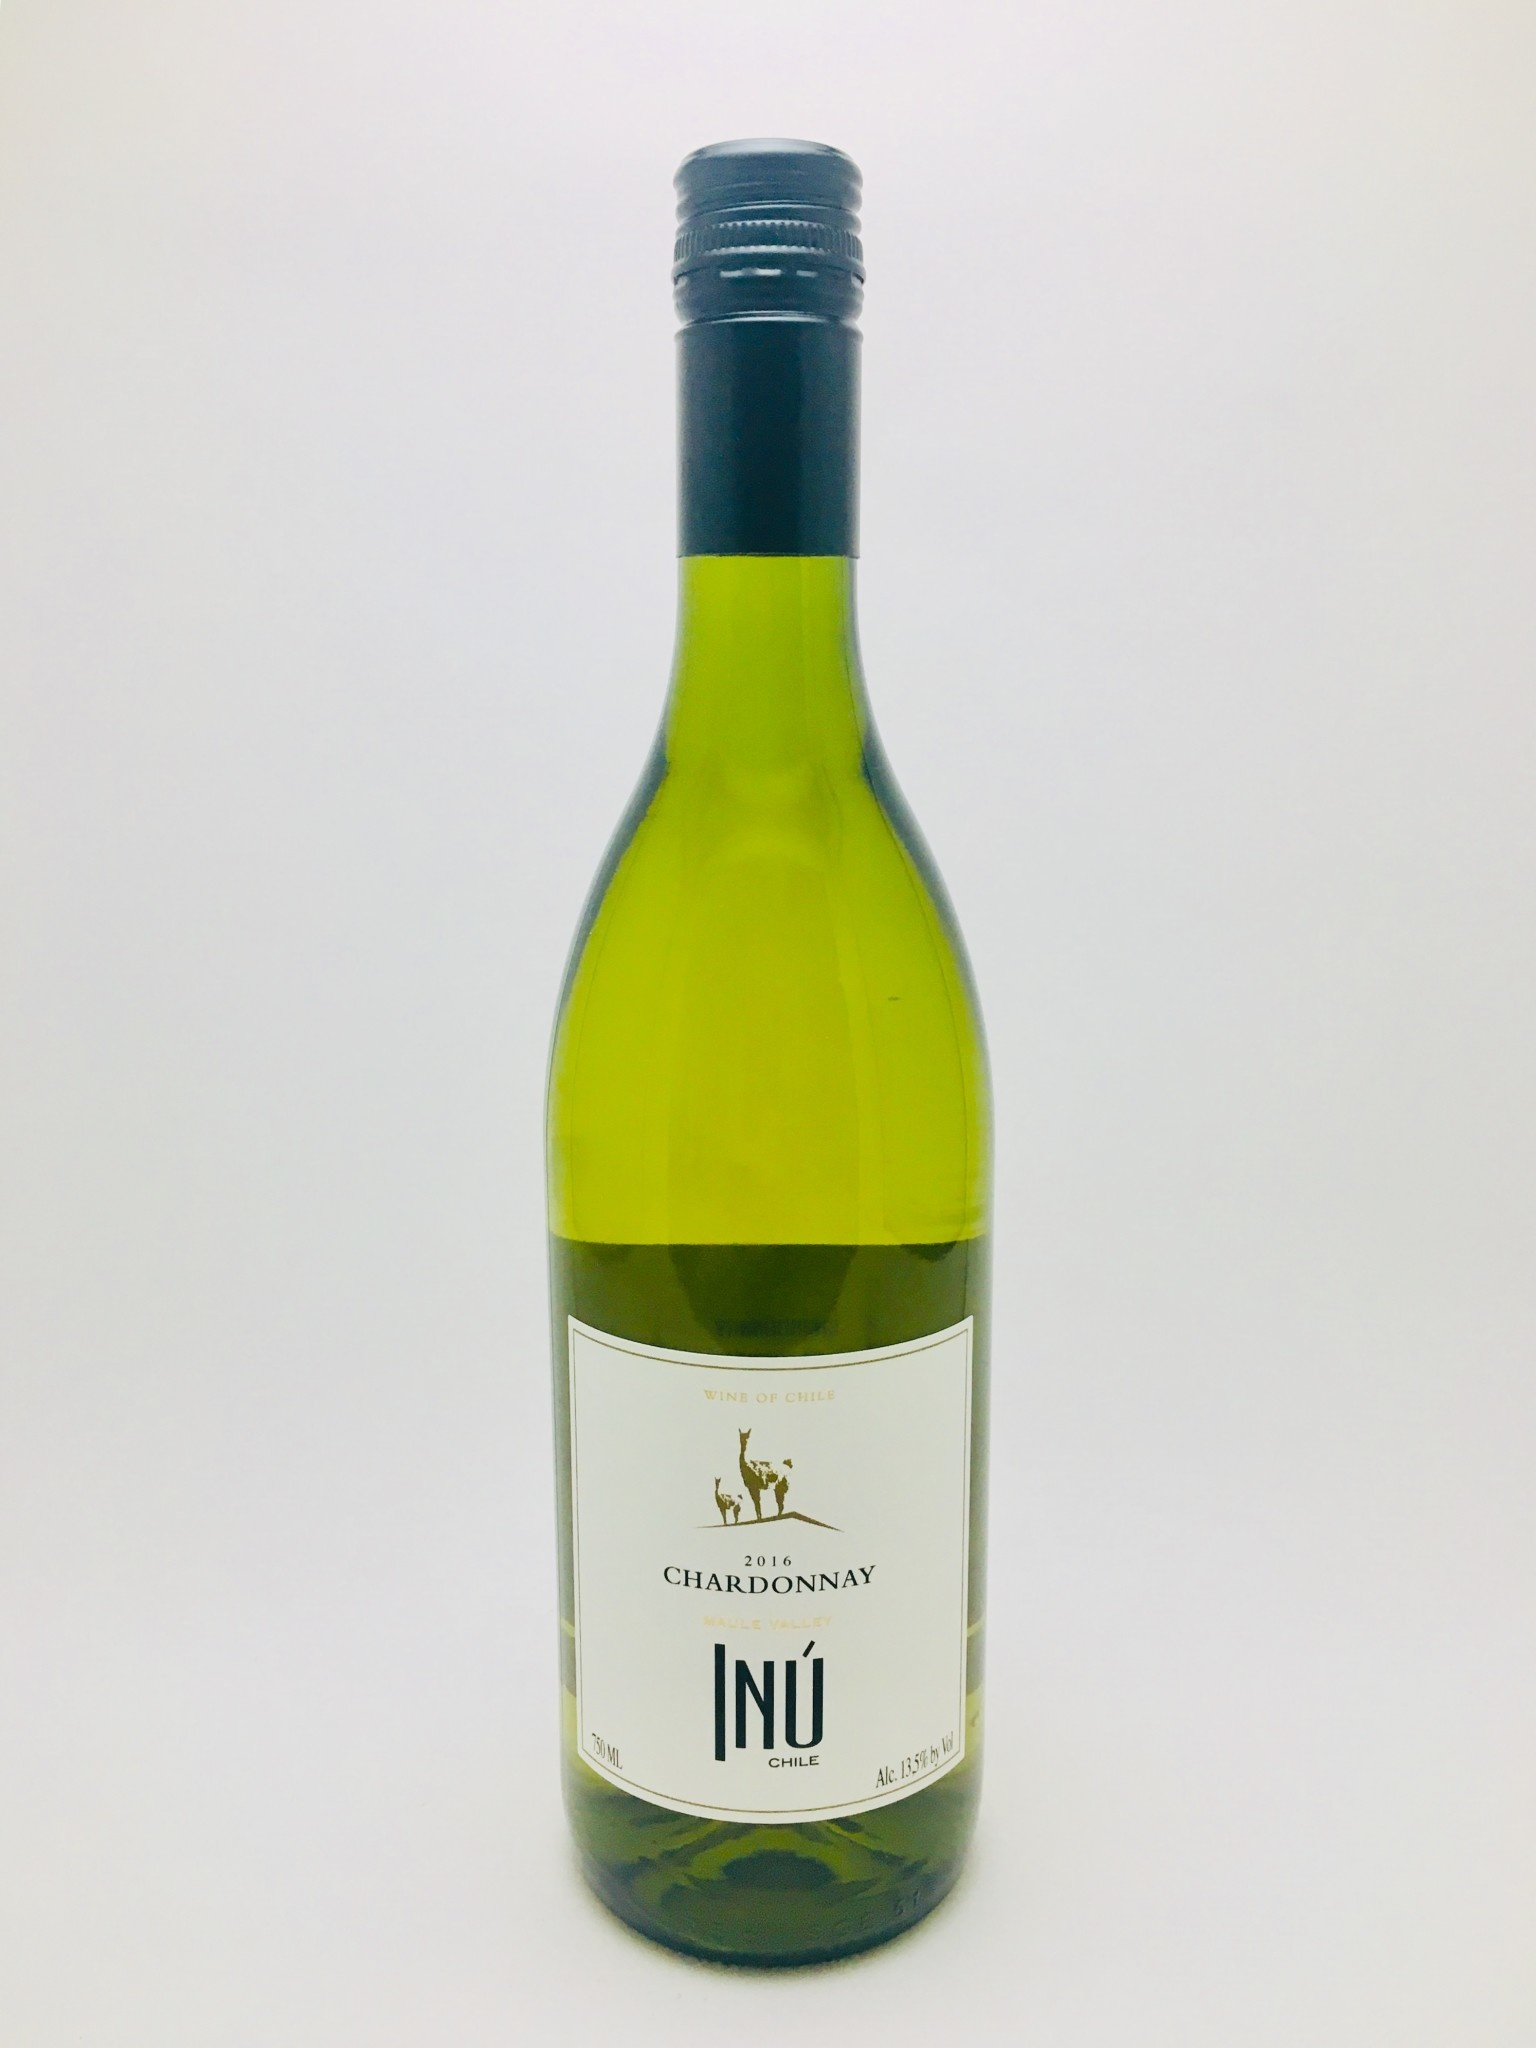 Inu Chardonnay Maule Valley Chile 2016